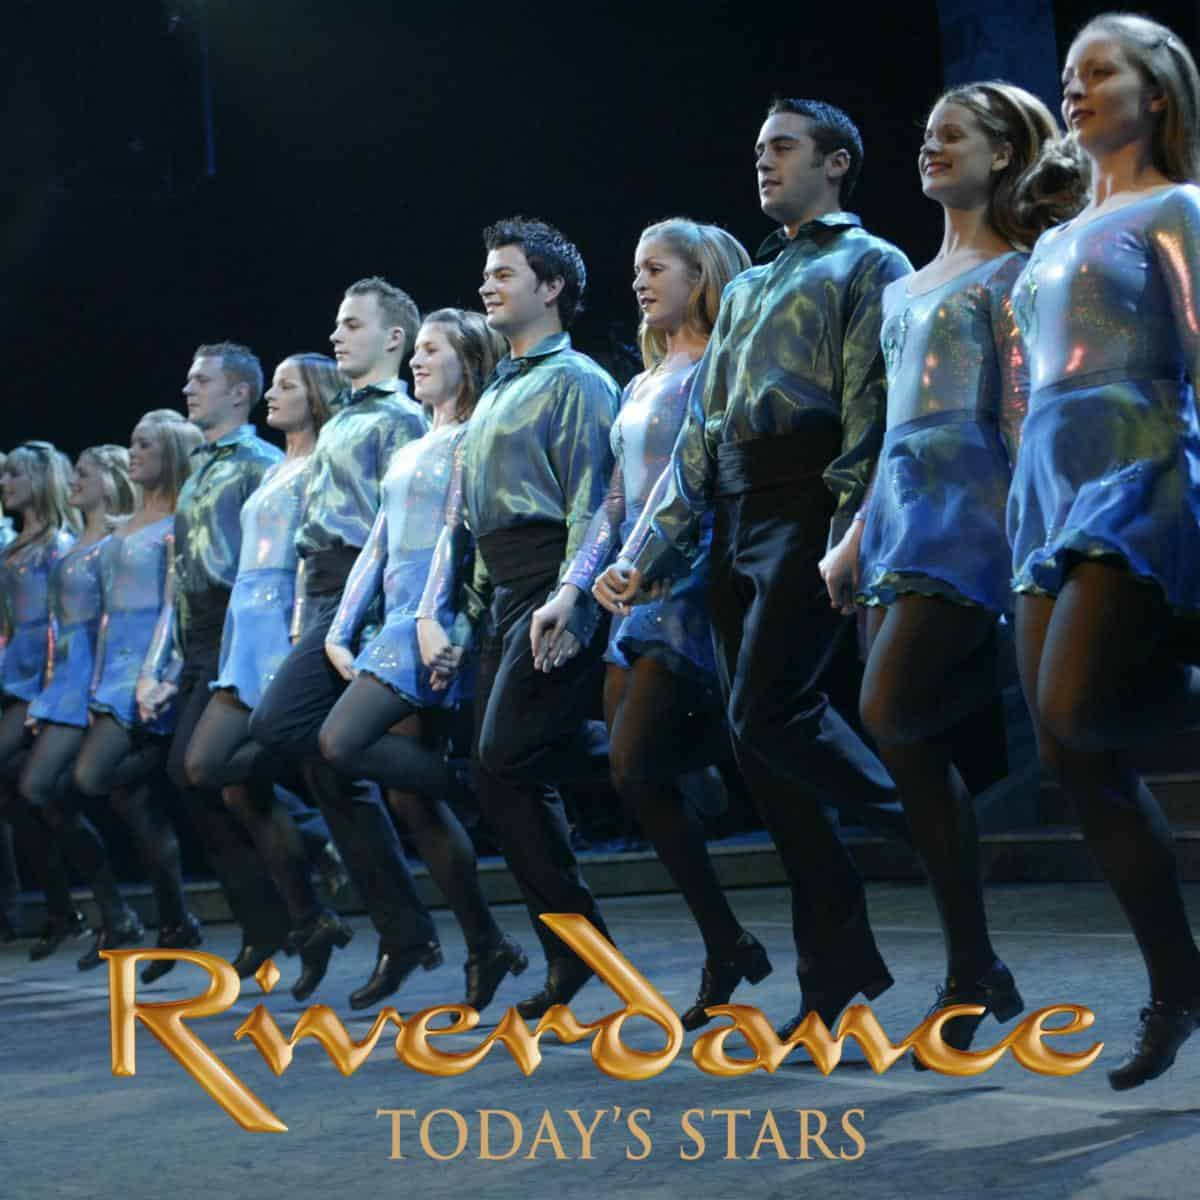 Sunday Movie News - B: the Beginning, Woody Allen, Riverdance and more! 4